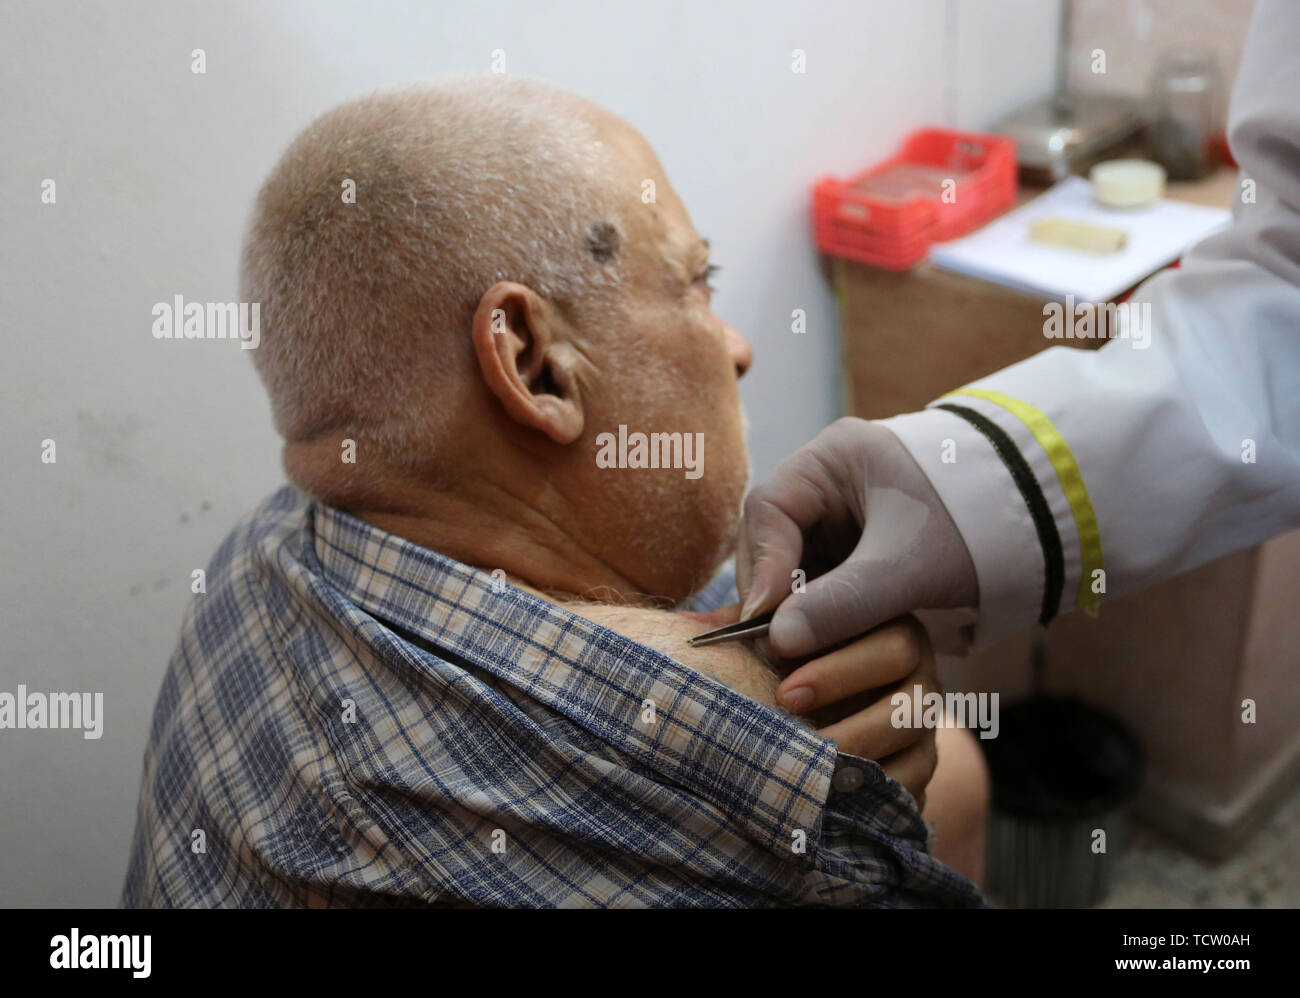 June 10, 2019 - Gaza City, Gaza Strip, Palestinian Territory - A Palestinian patient receives a bee-sting therapy by a health practitioner at a clinic in Gaza city on June 10, 2019. Apitherapy is the use of substances from honeybees, such as honey, propolis, royal jelly, or even venom (extracted or from live bees), to relieve various medical conditions. Most claims of apitherapy the medical use of bee venom are anecdotal and have not been proved to the satisfaction of scientists, although believers say it helps relieve pain from multiple sclerosis and rheumatoid arthritis and certain other ail - Stock Image